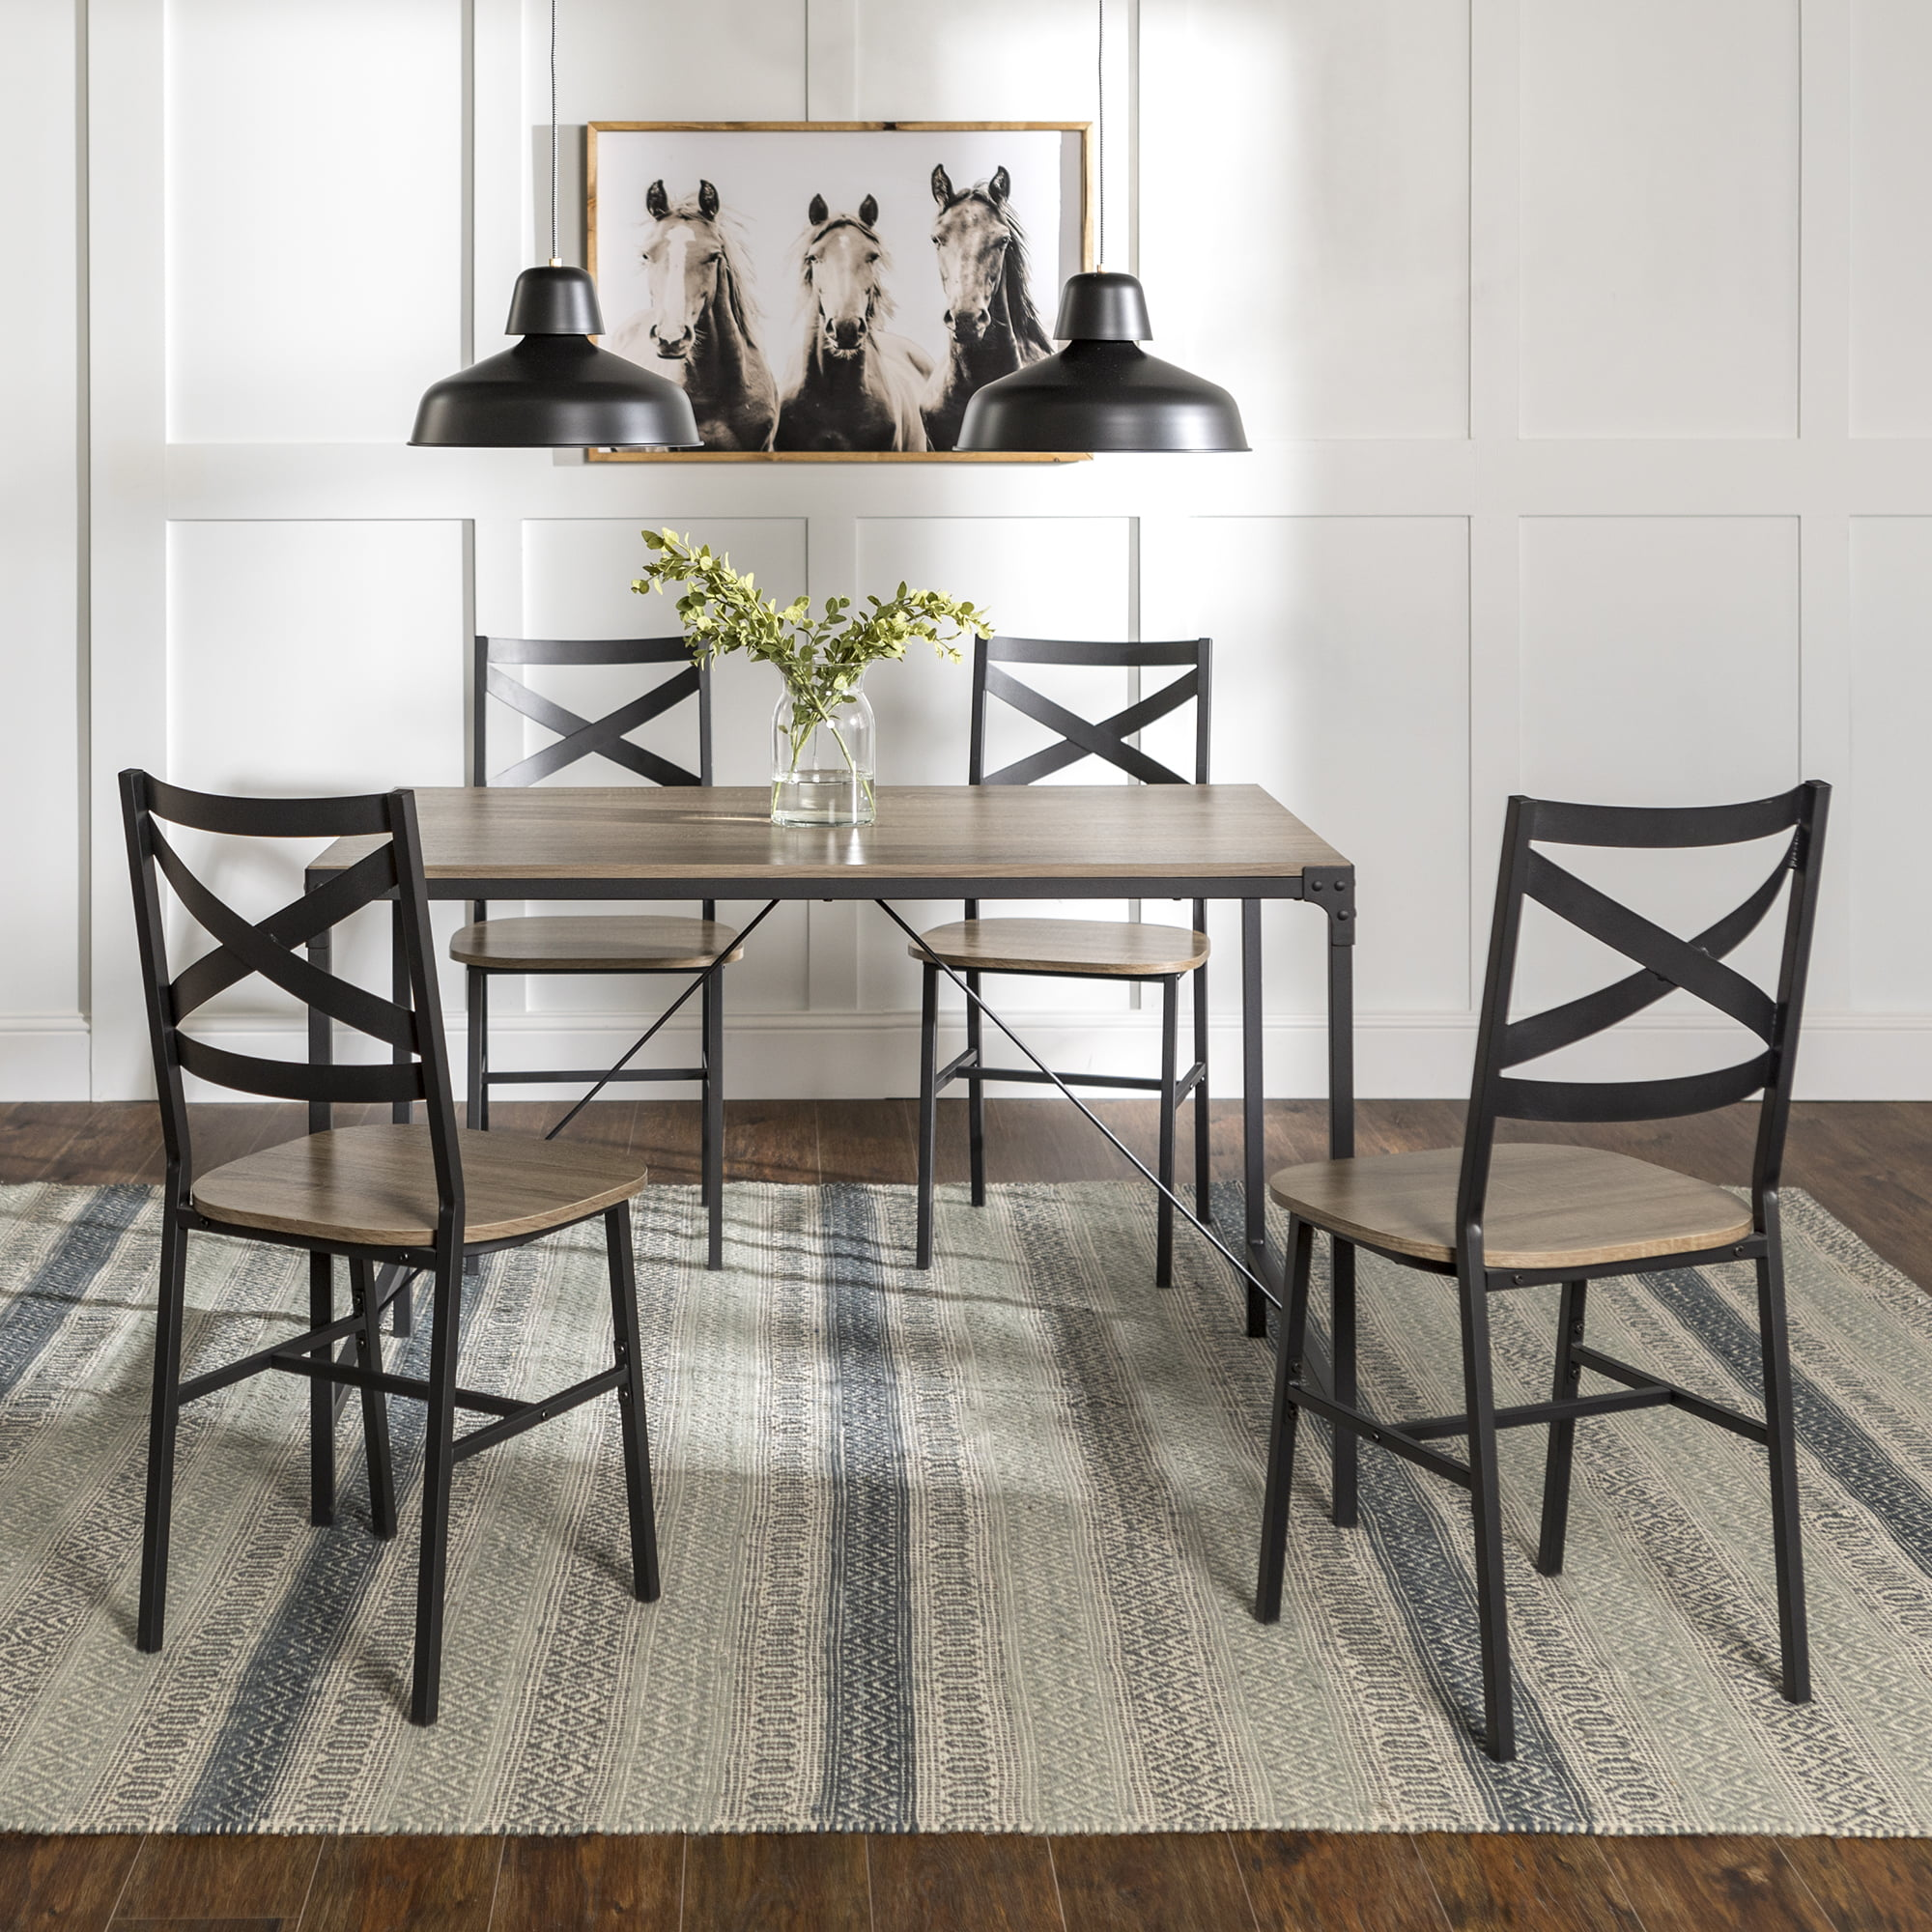 Picture of: Manor Park Angle Iron Rustic Wood 5 Piece Dining Table Set Driftwood Walmart Com Walmart Com